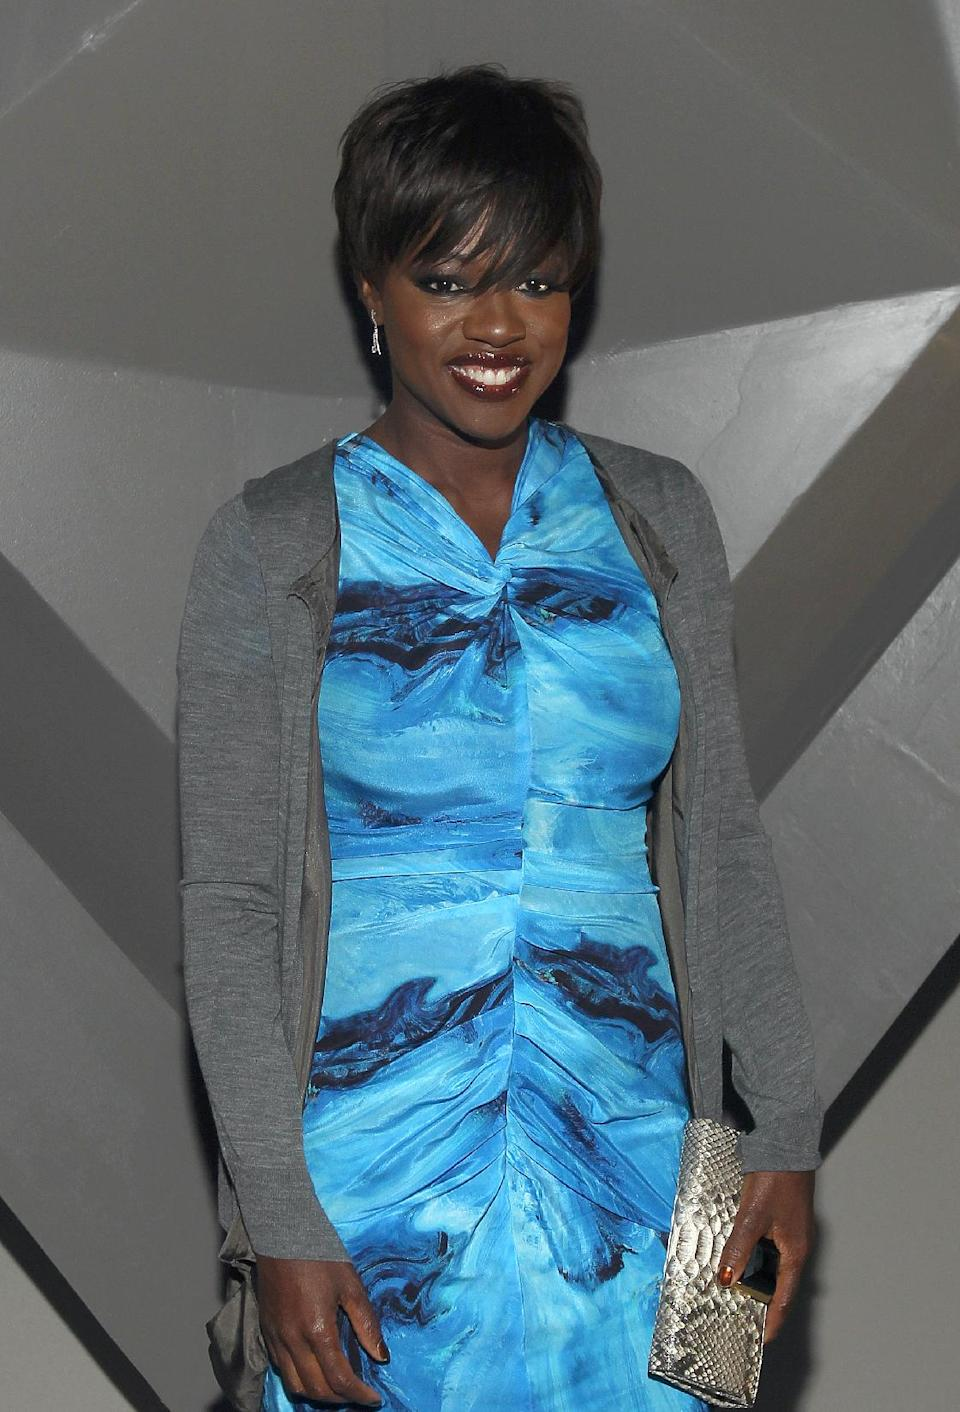 Actress Viola Davis attends the Vera Wang Fall 2012 show during Fashion Week in New York, Tuesday, Feb. 14, 2012. (AP Photo/ Donald Traill)